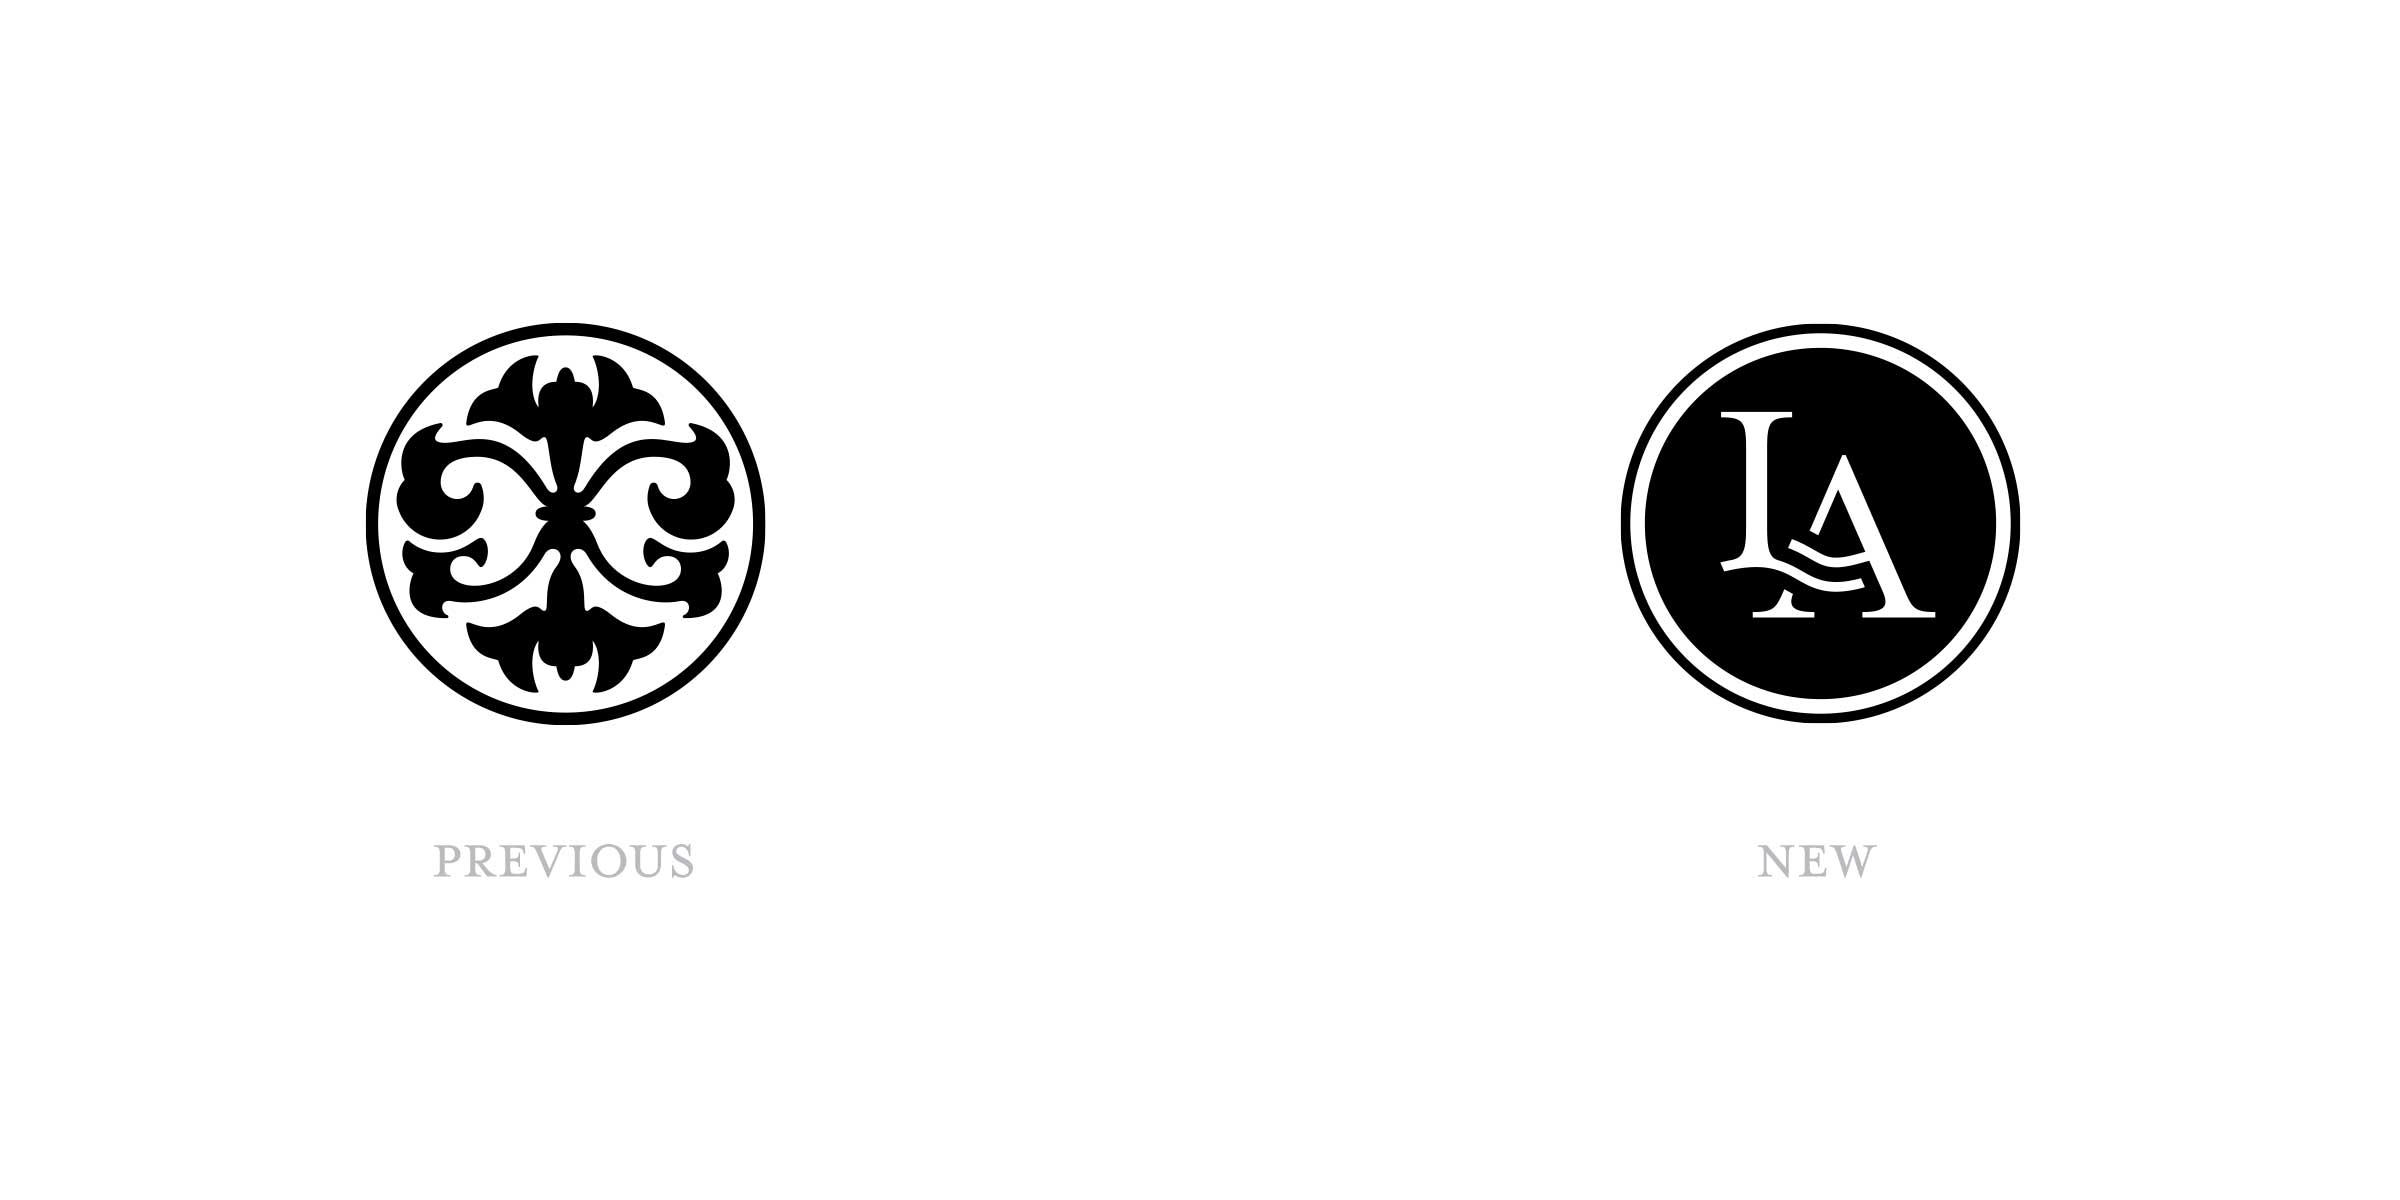 Old and new brandmarks